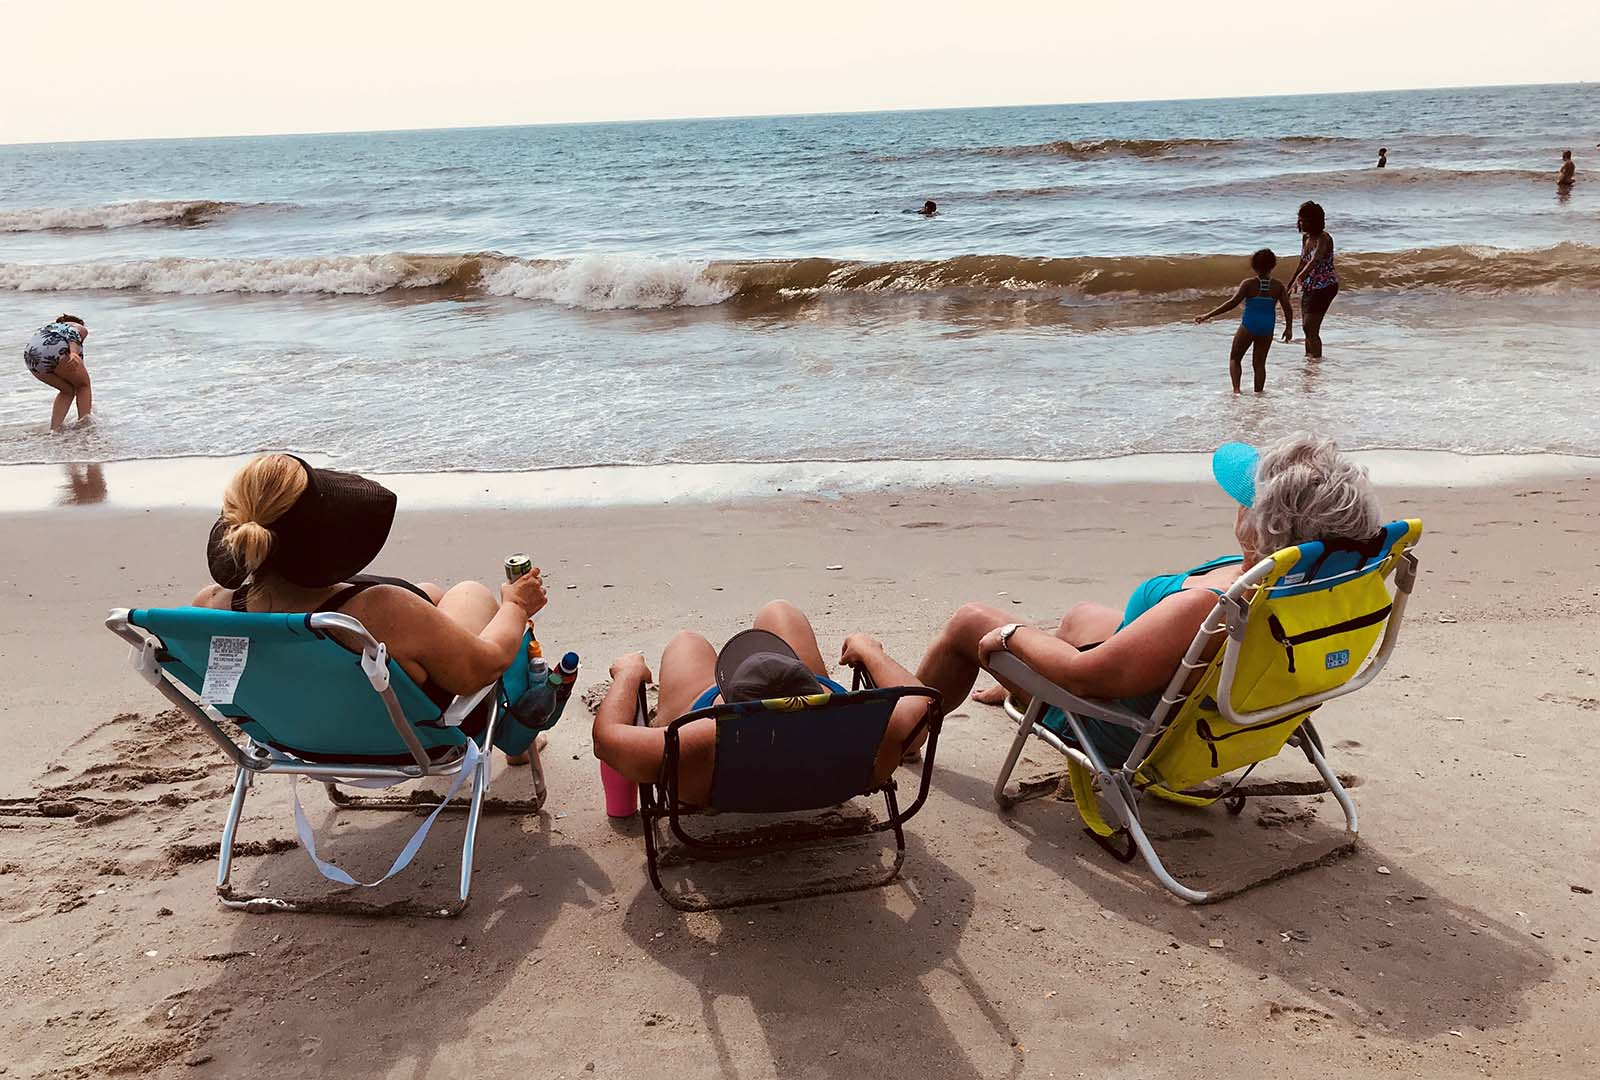 three women sitting in beach chairs by the ocean